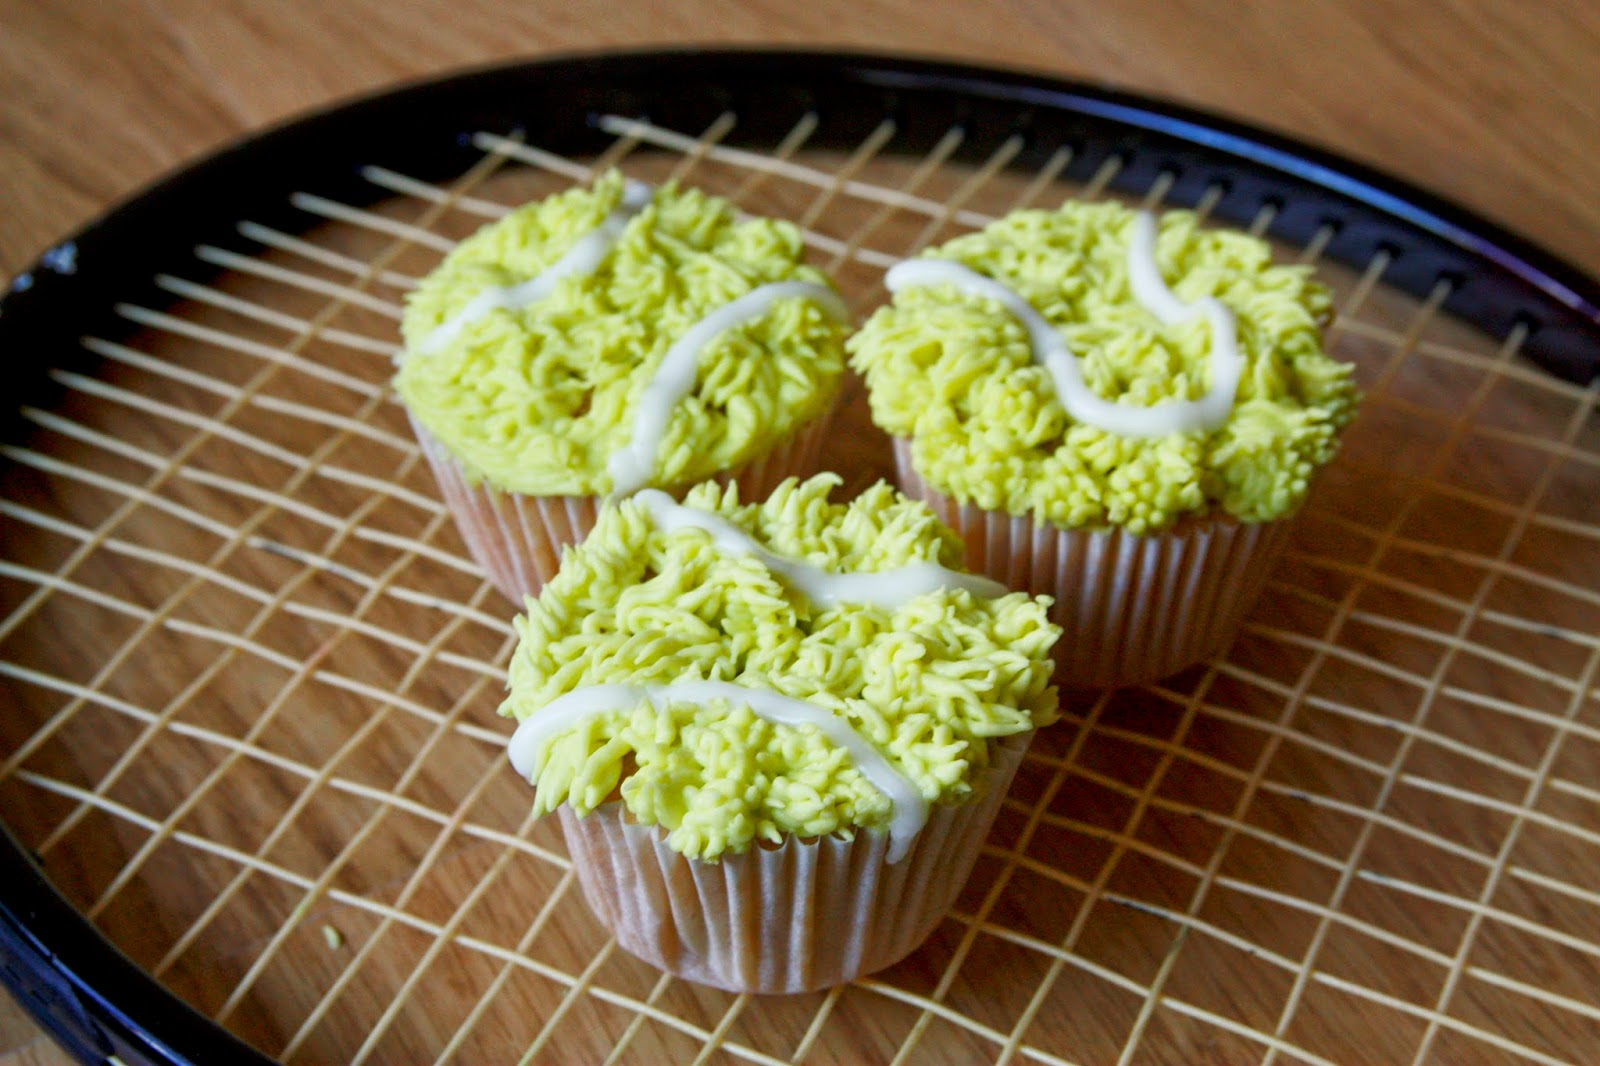 3 Rhubarb and custard flavoured cupcakes iced to look like tennis balls